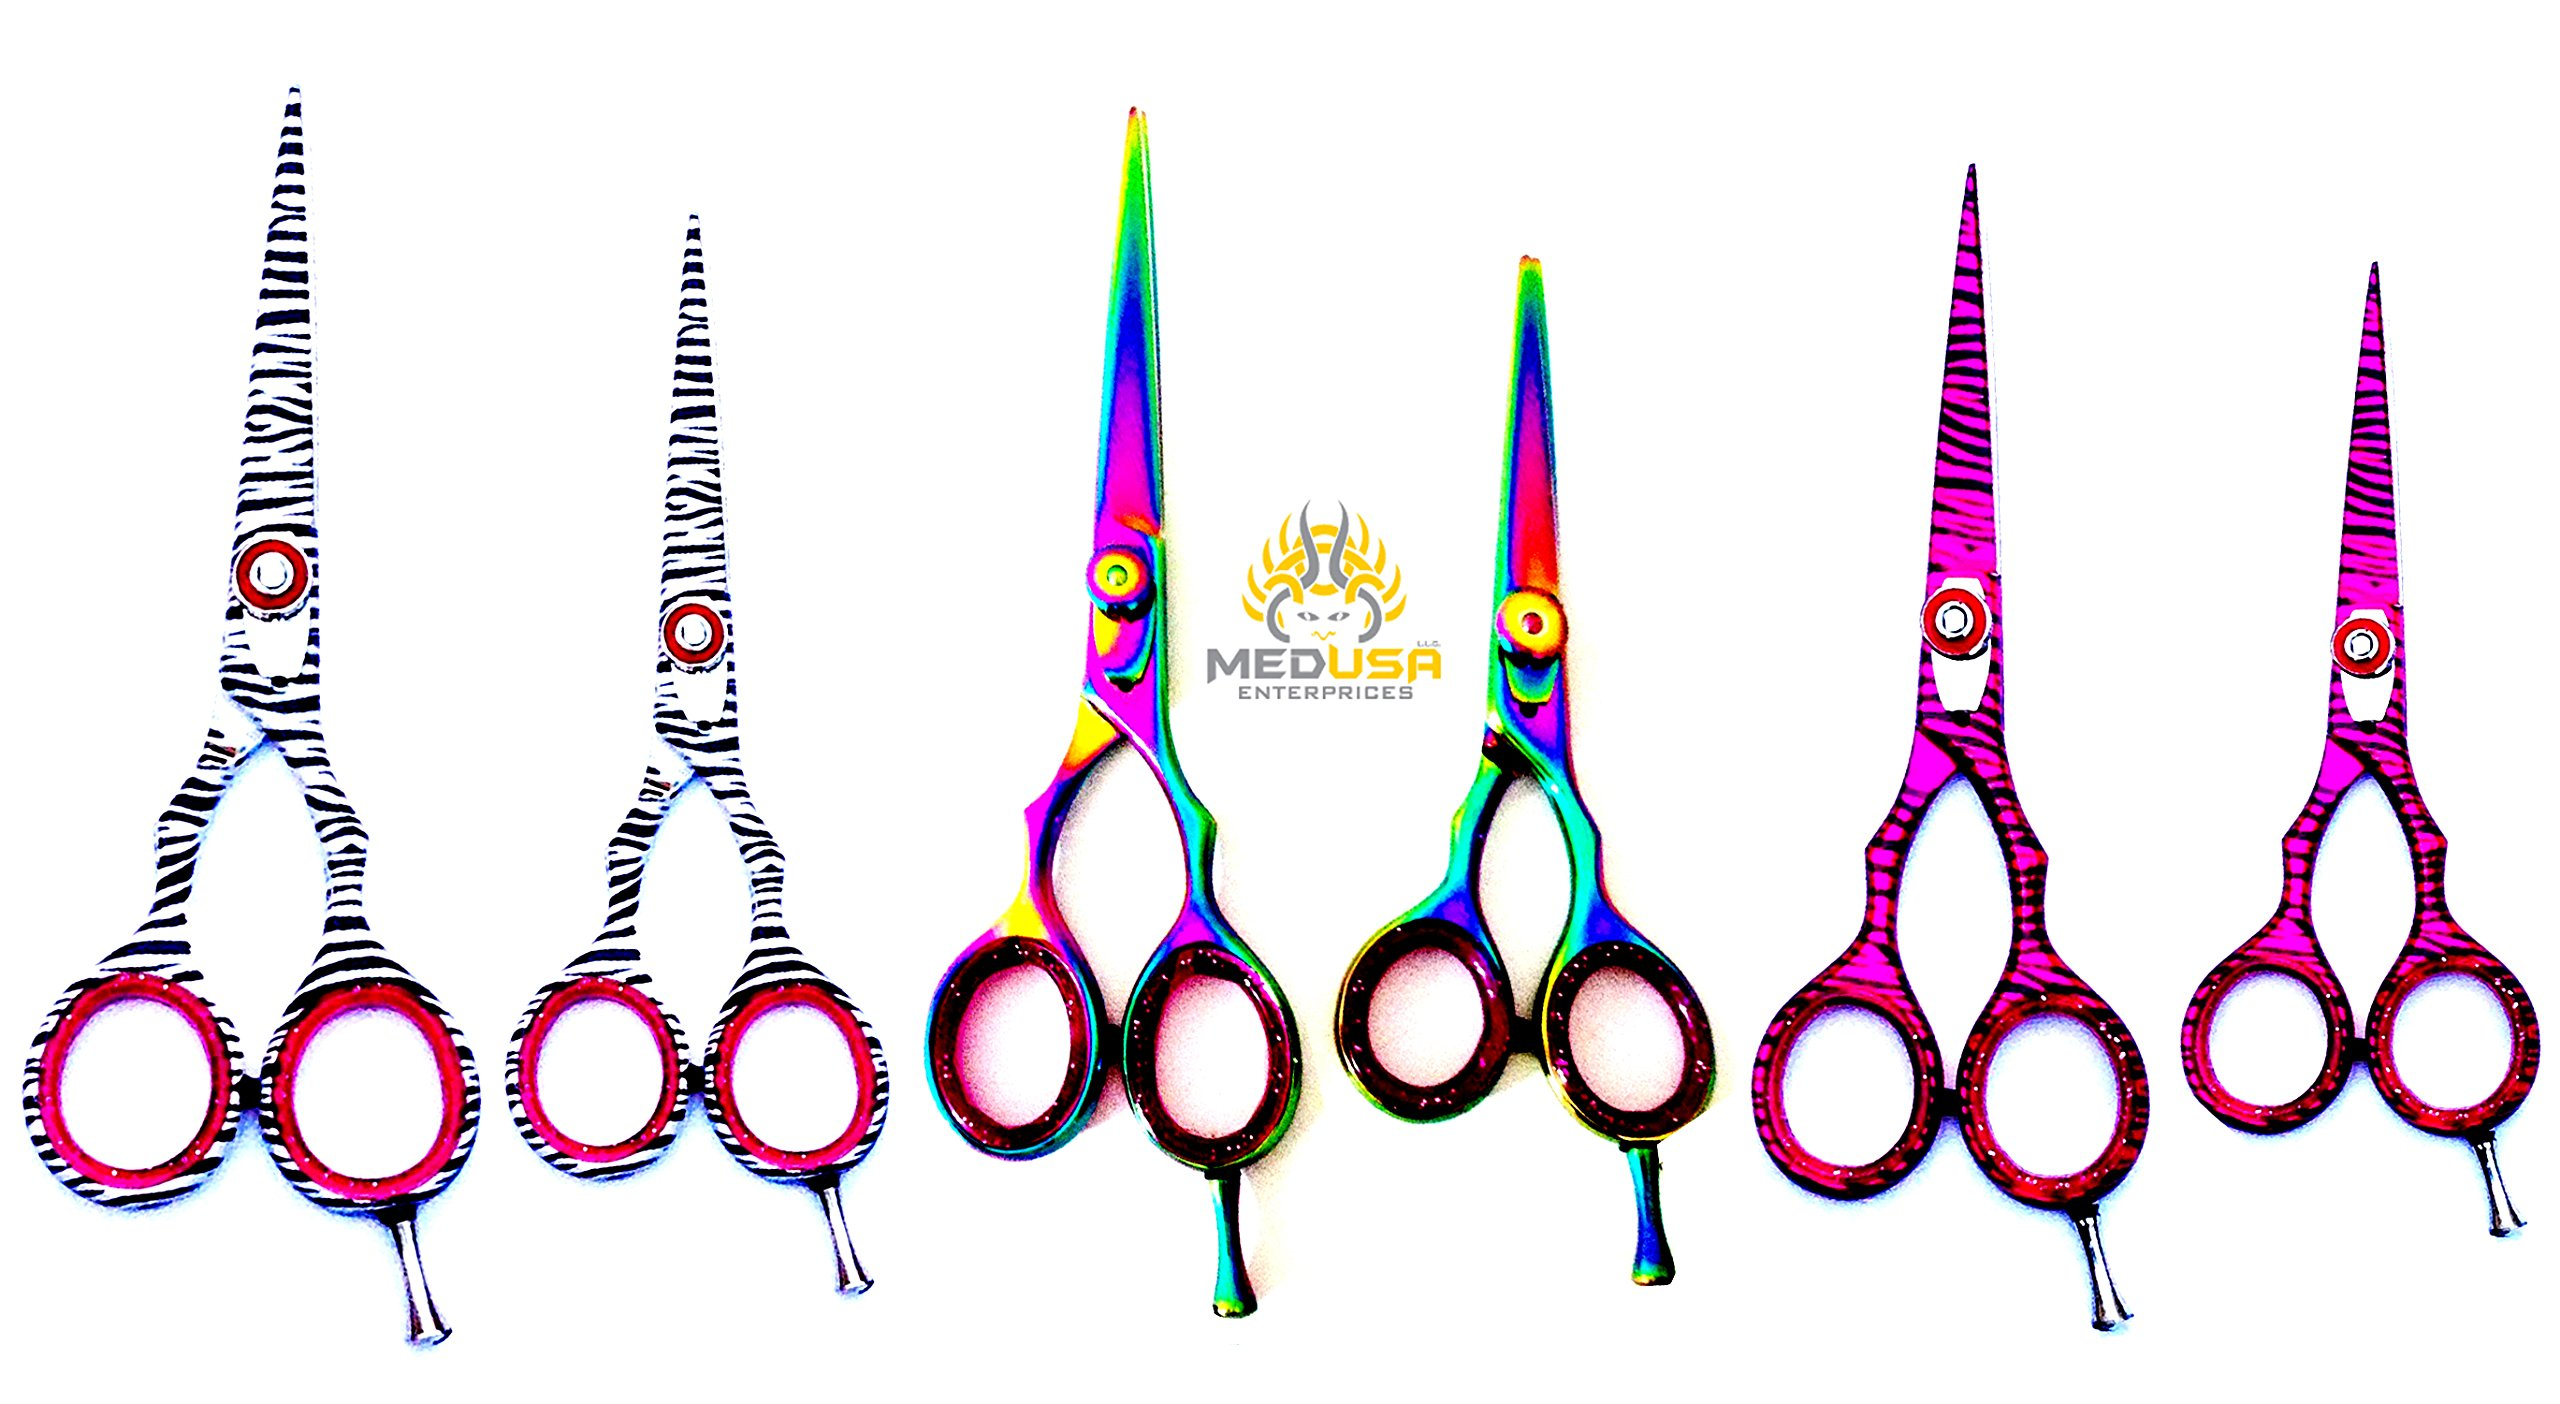 Professional High Quality Japanese Stainless Steel Barber Razor Edge Hair Cutting Shears Scissors Sets 5.5'' & 4.5'' by MedUSA